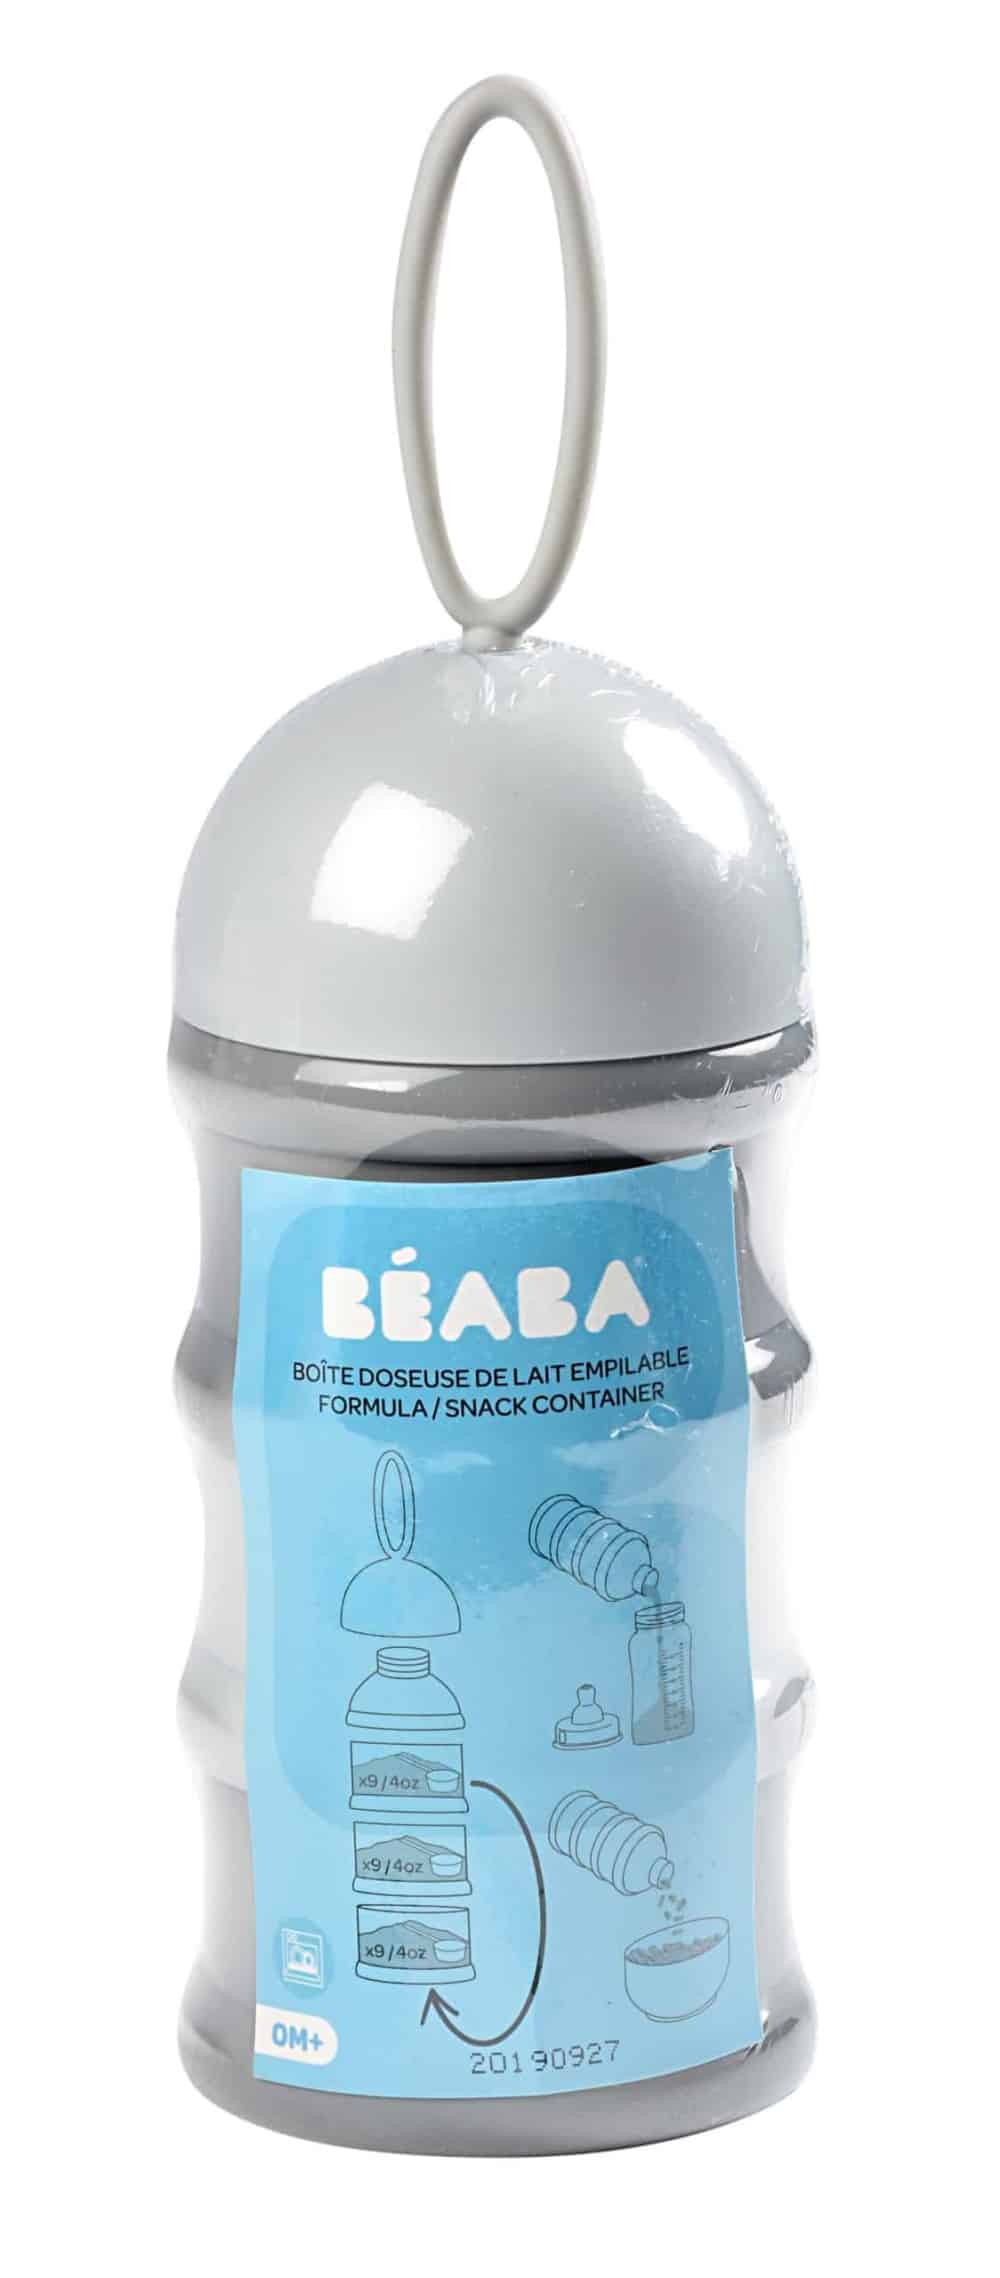 Beaba Formula Snack Container in packaging in cloud